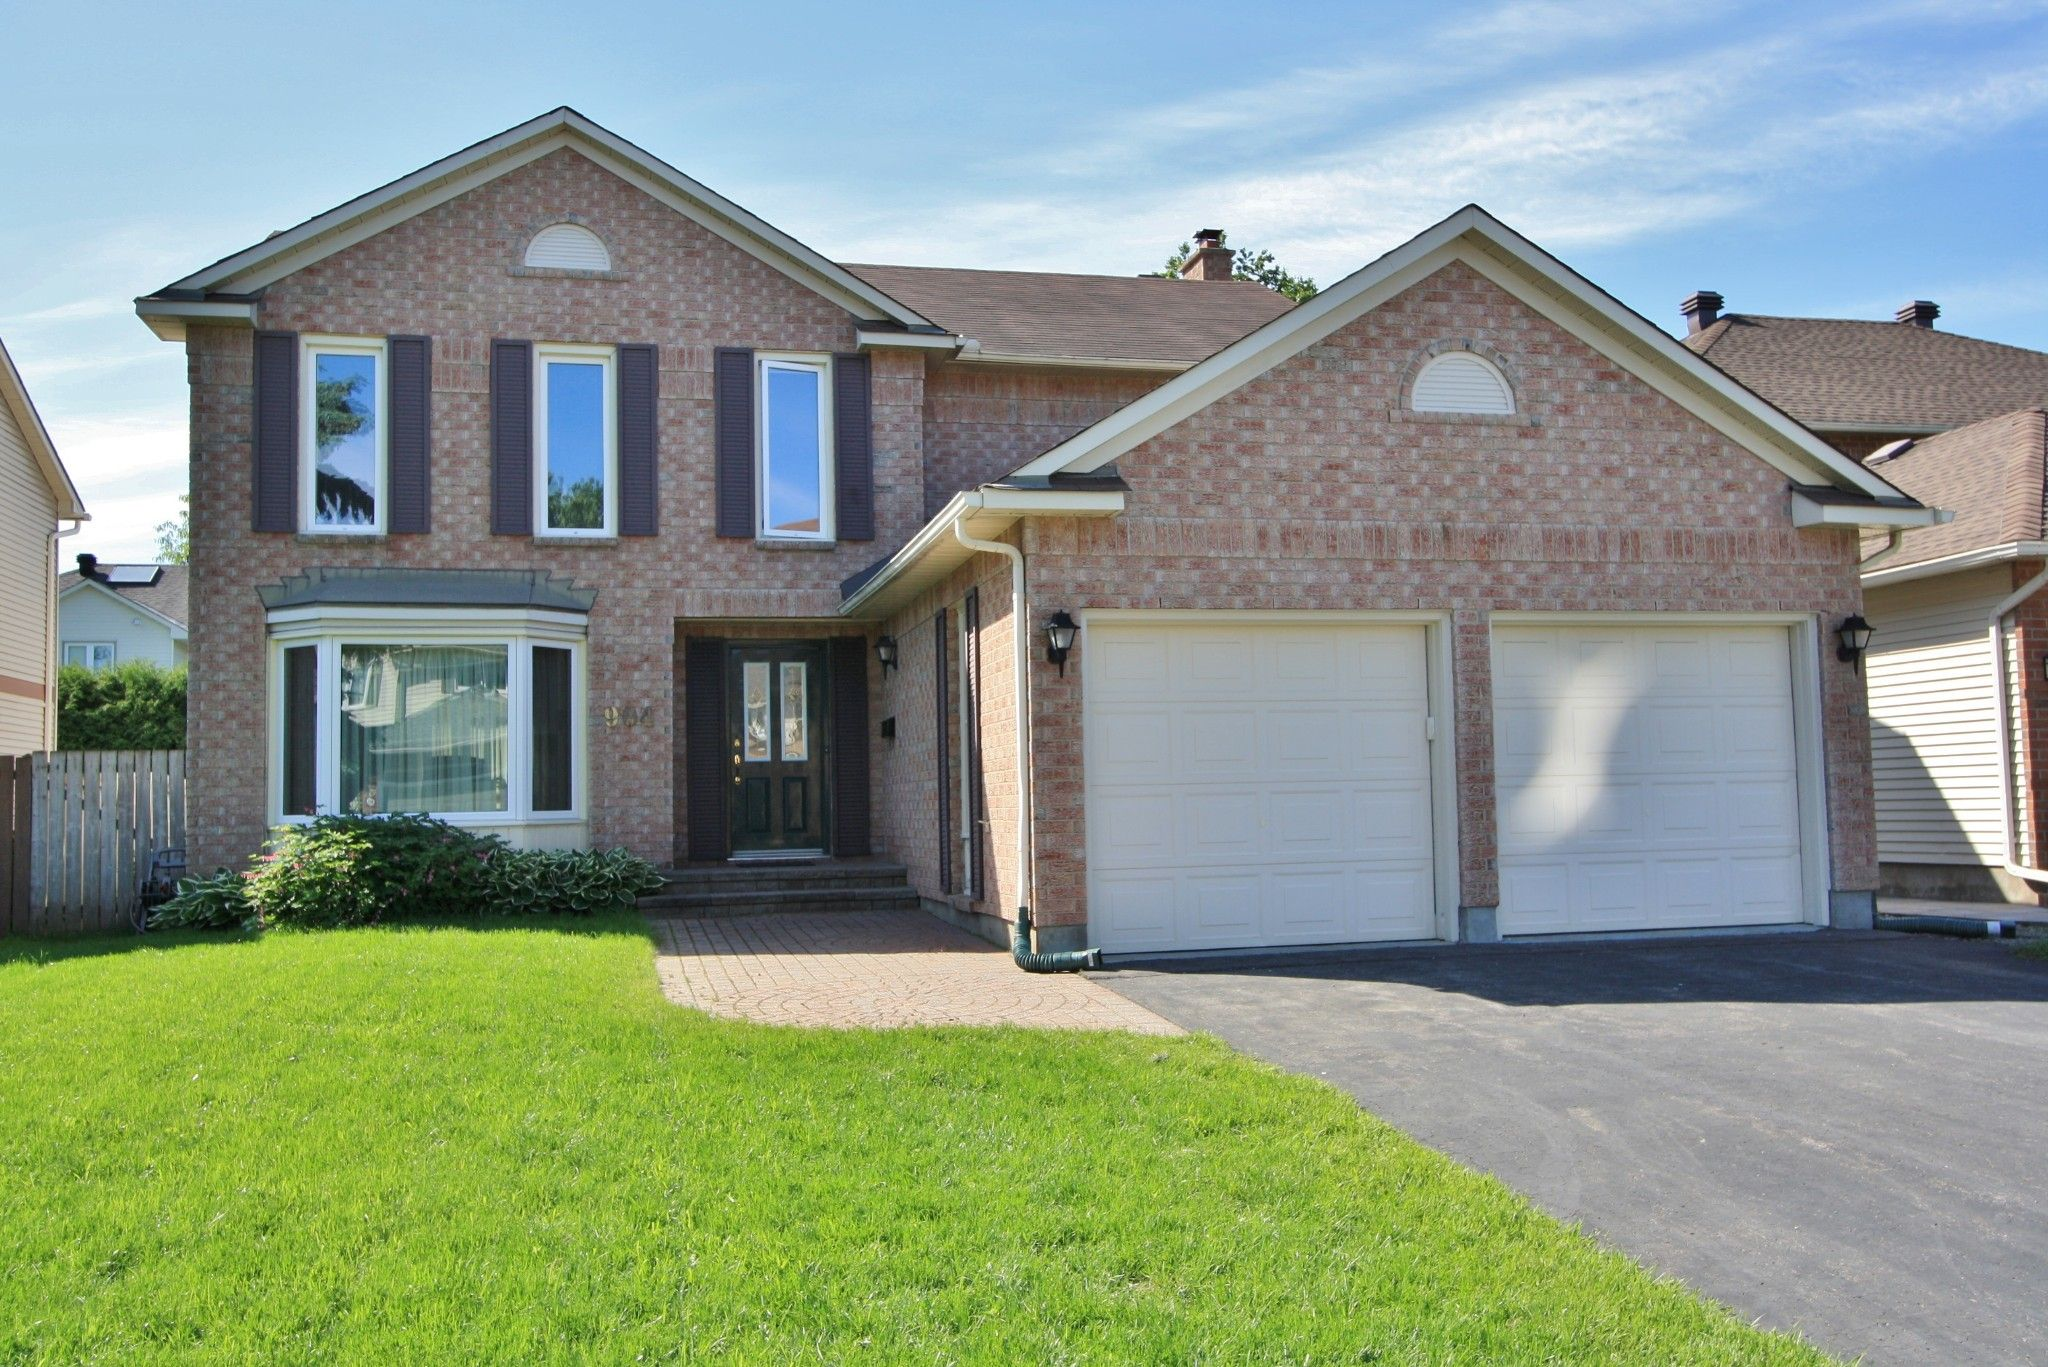 Main Photo: 904 Raftsman Lane in Ottawa: House for sale (Convent Glen)  : MLS®# 1112979